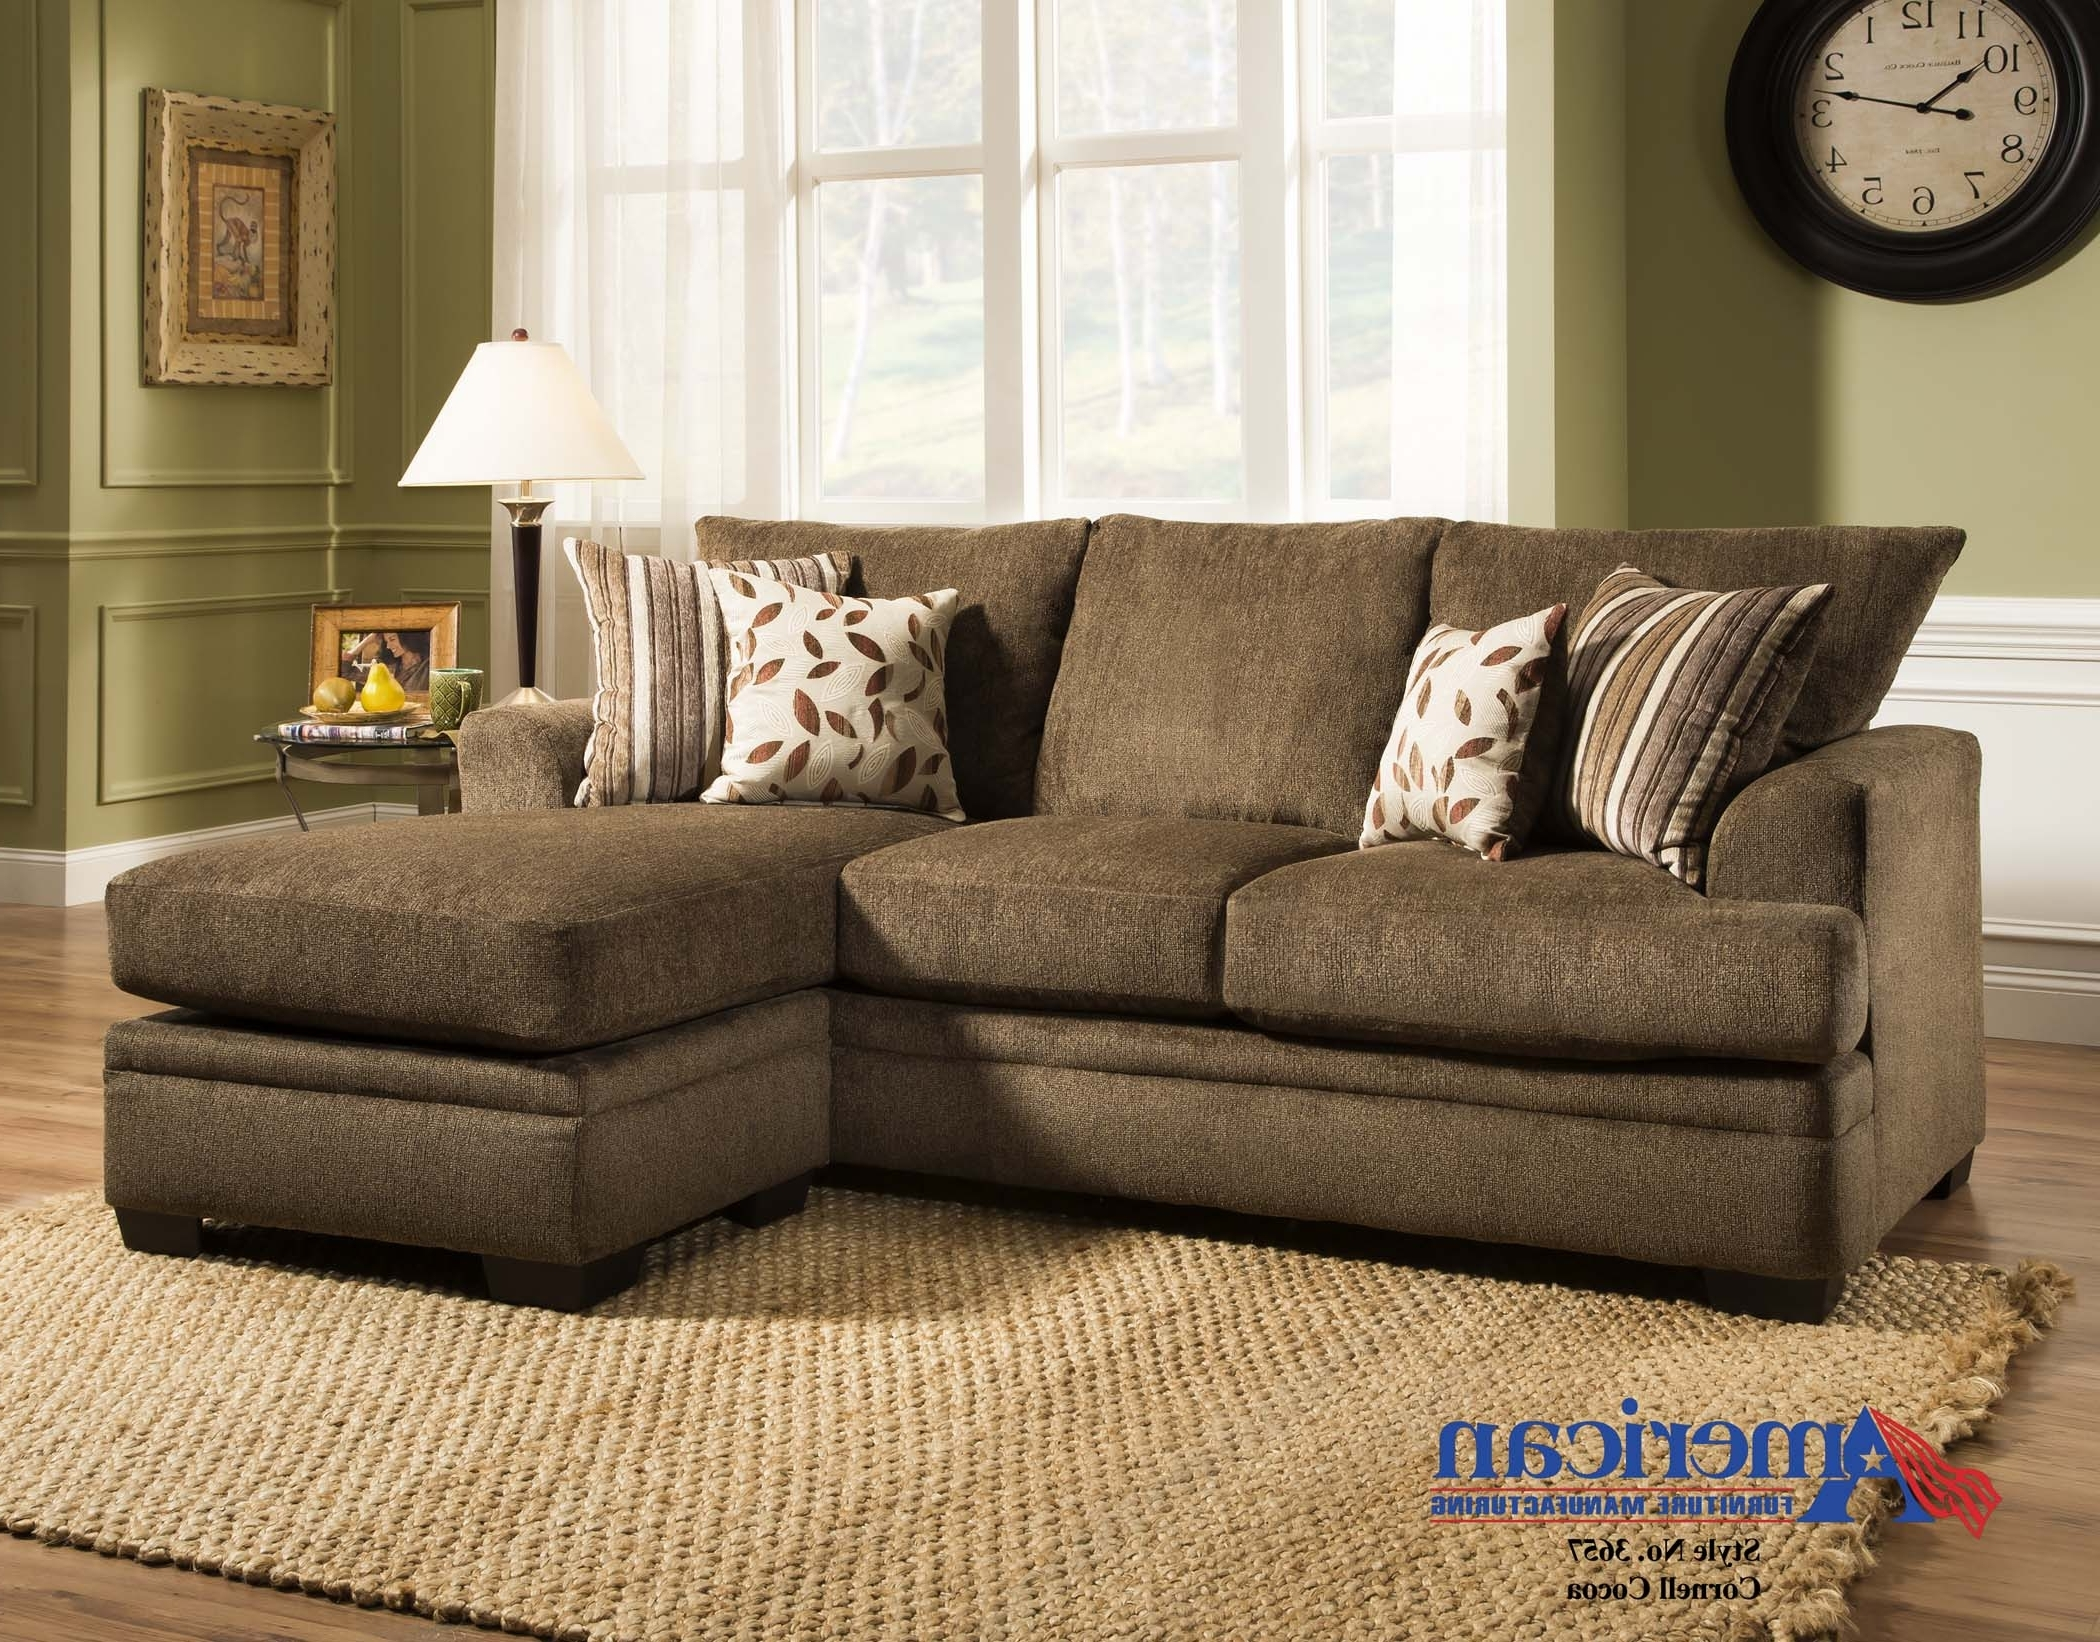 Living Room – Crazy Joe's Best Deal Furniture Pertaining To Latest Janesville Wi Sectional Sofas (View 8 of 20)